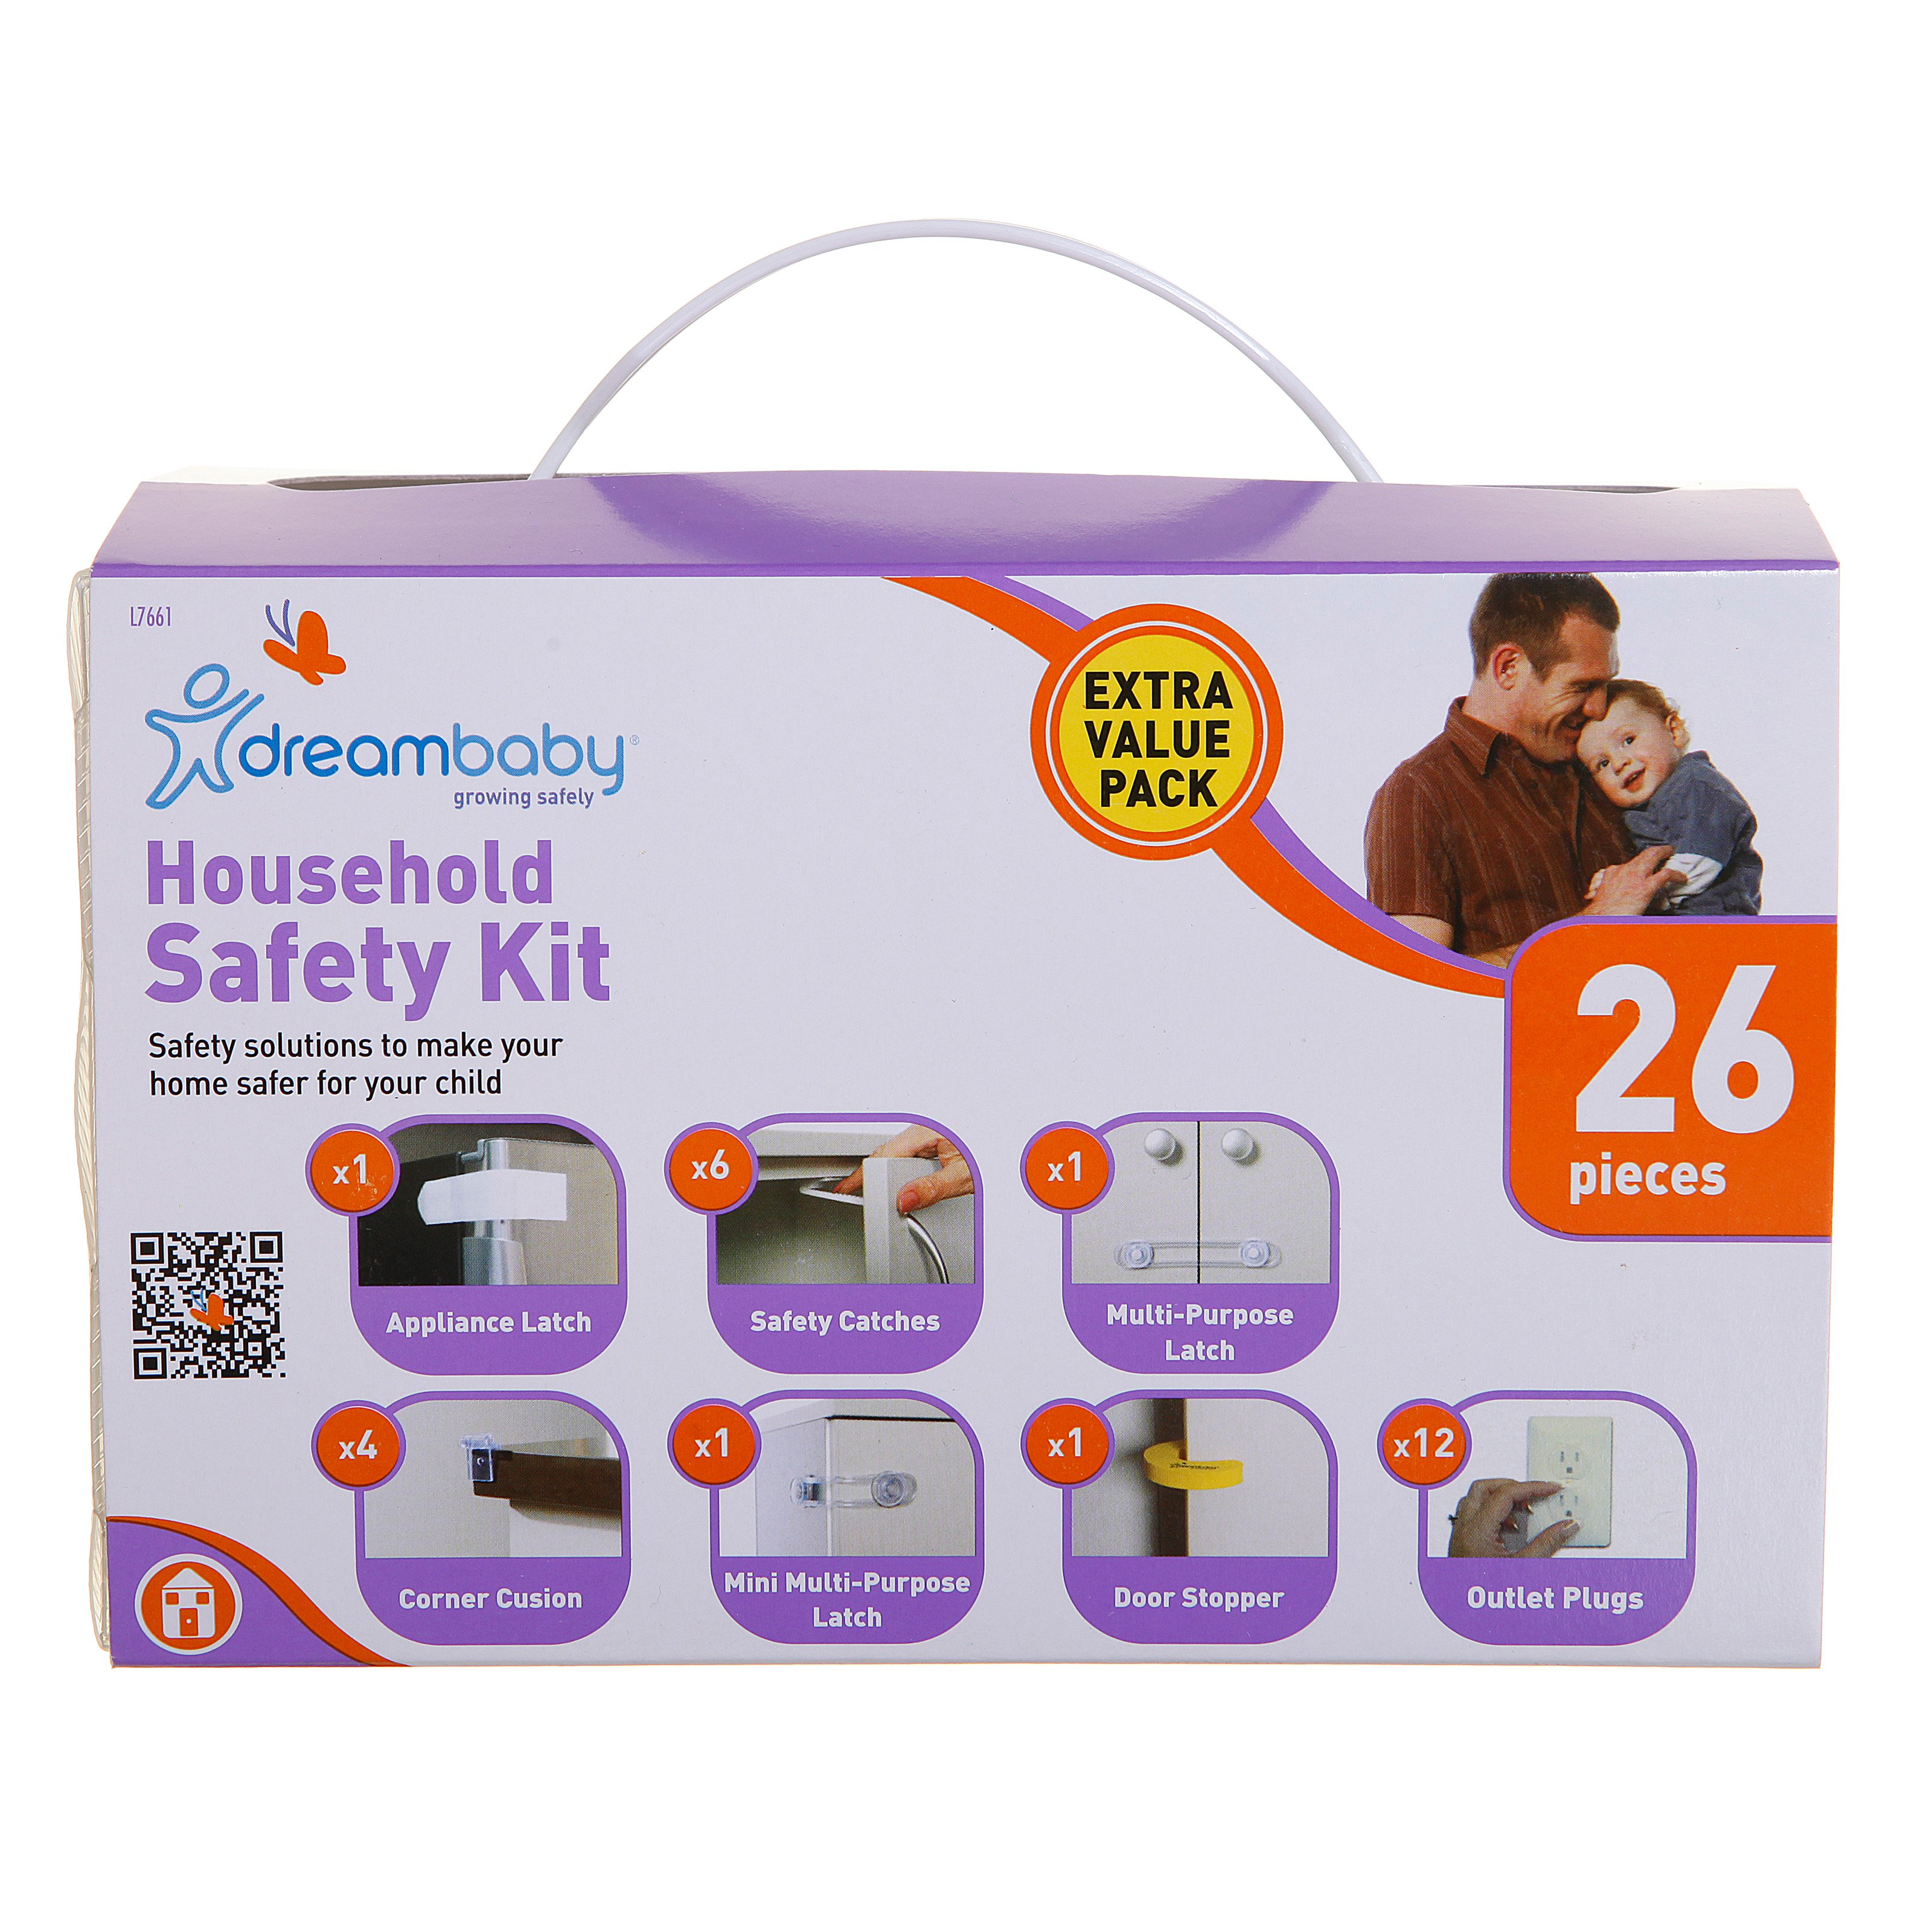 Dreambaby Household Safety Kit